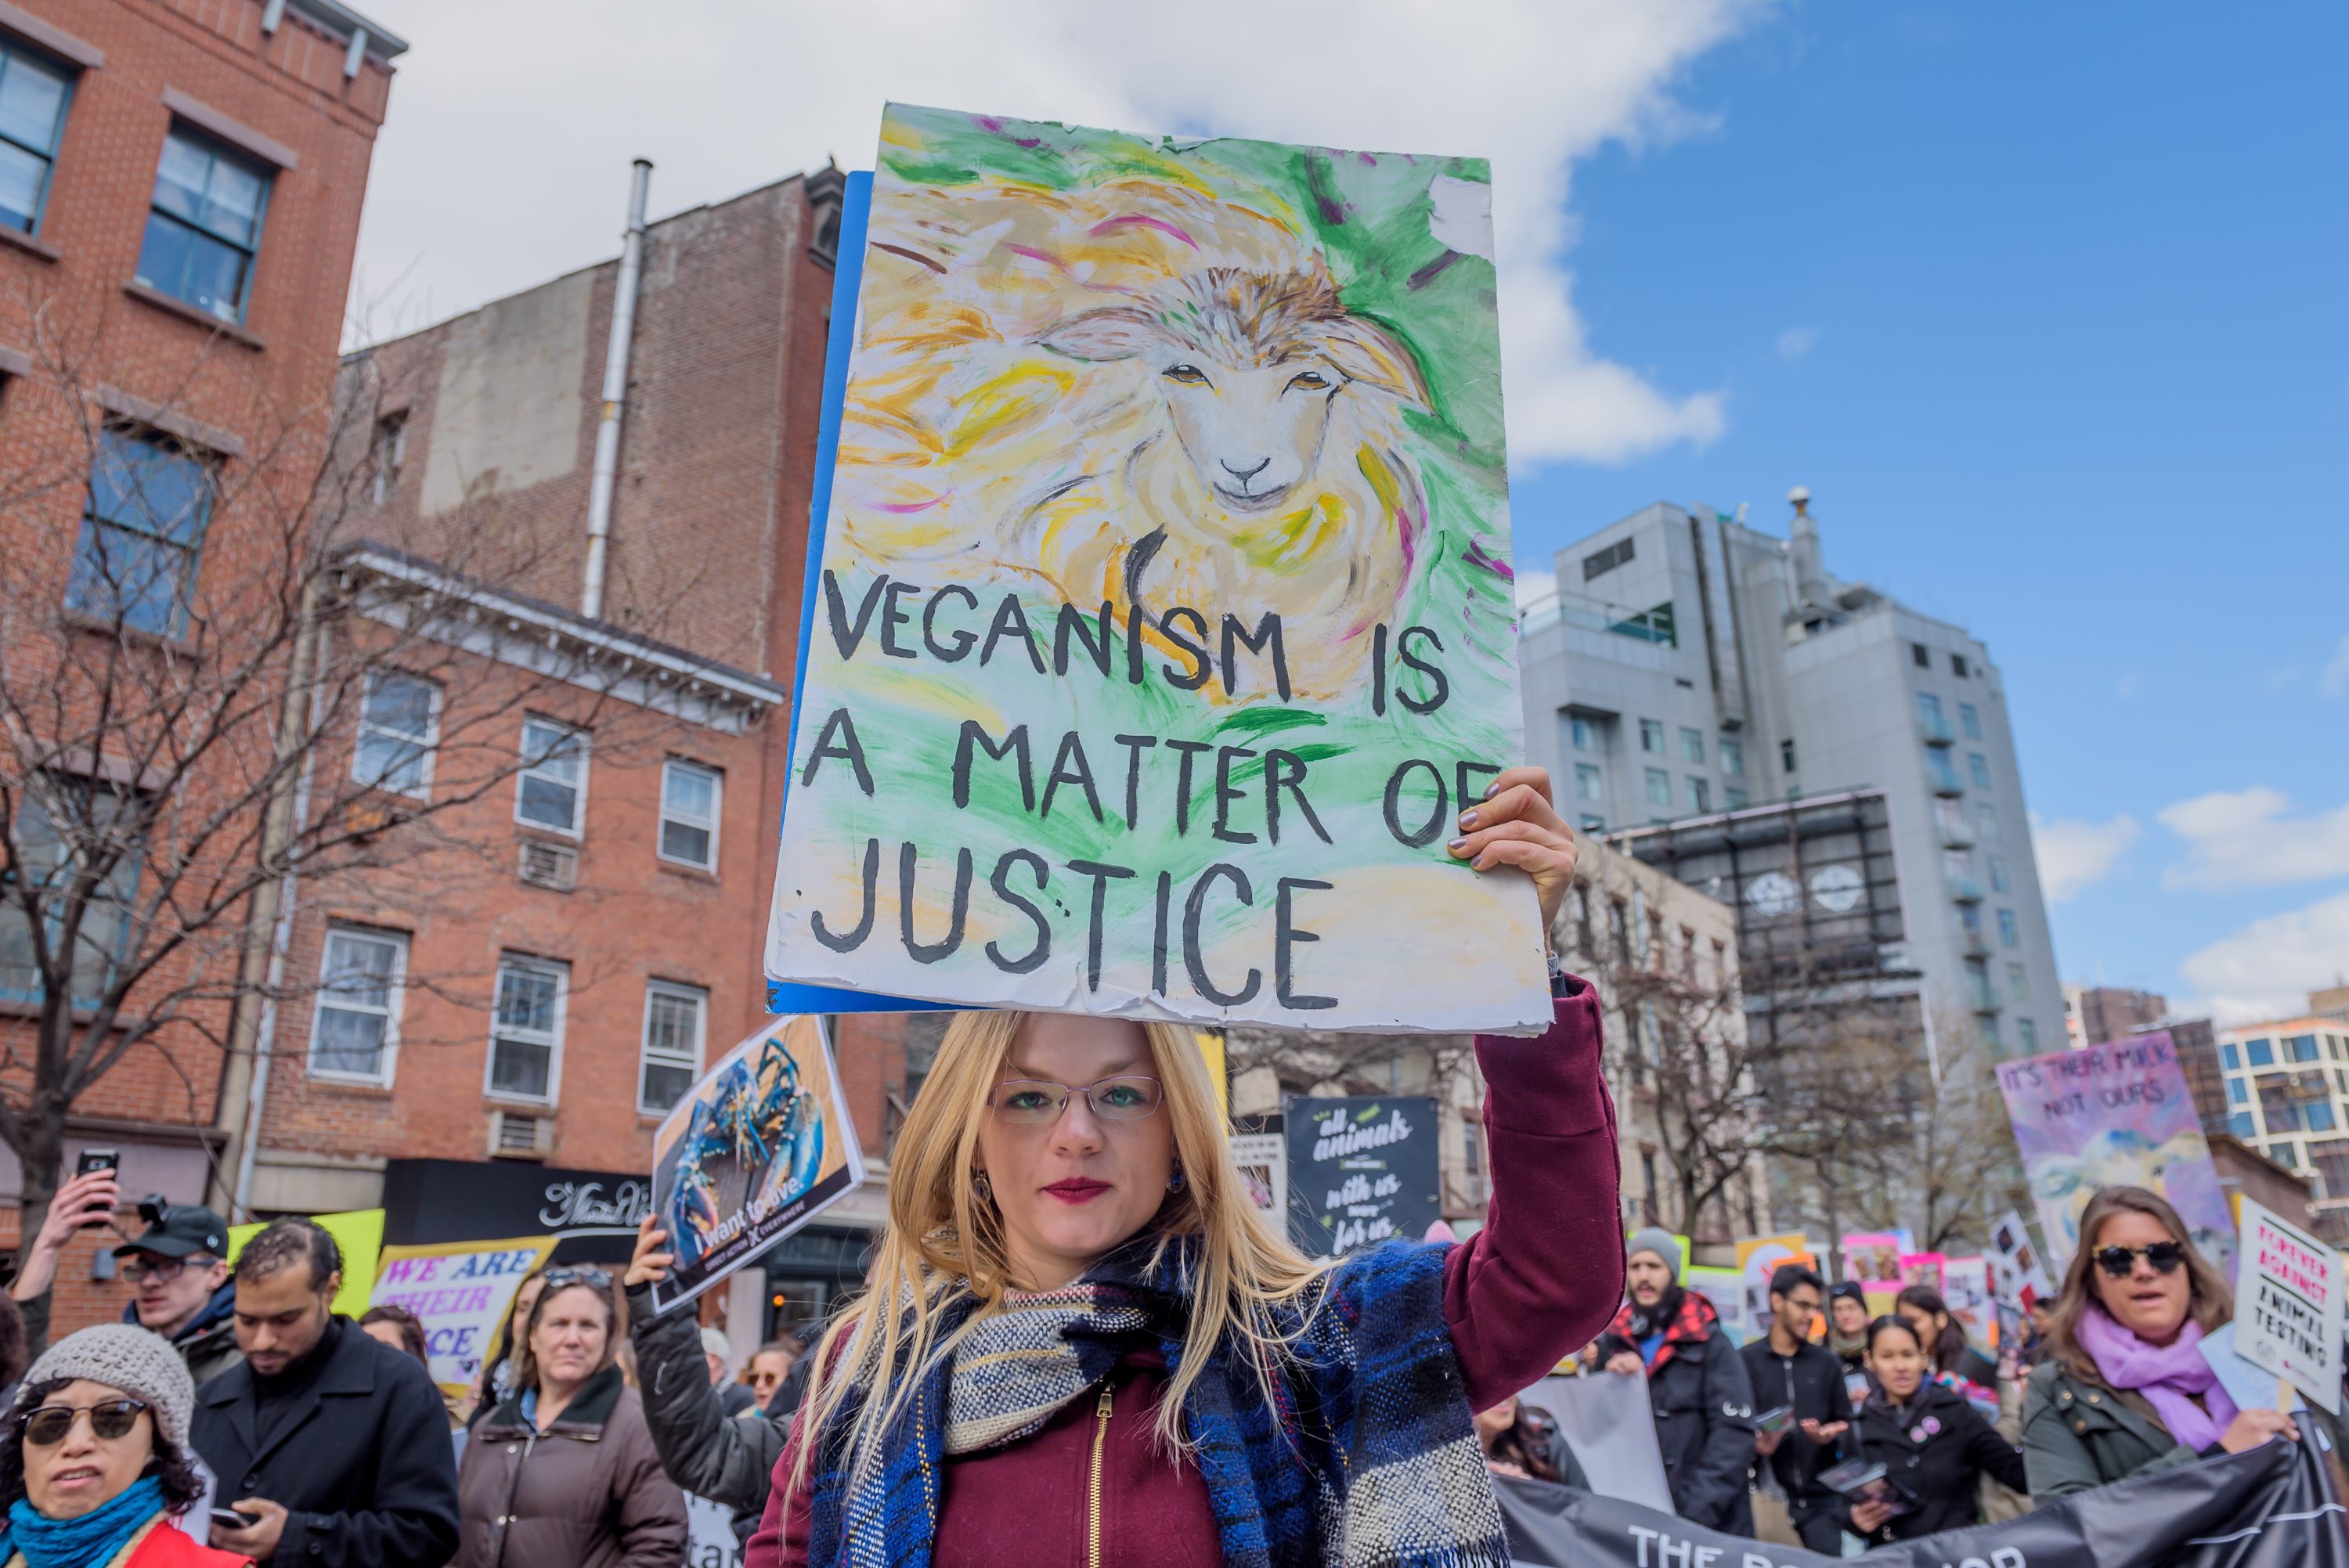 Like religion, veganism is a choice and should be a belief protected by law